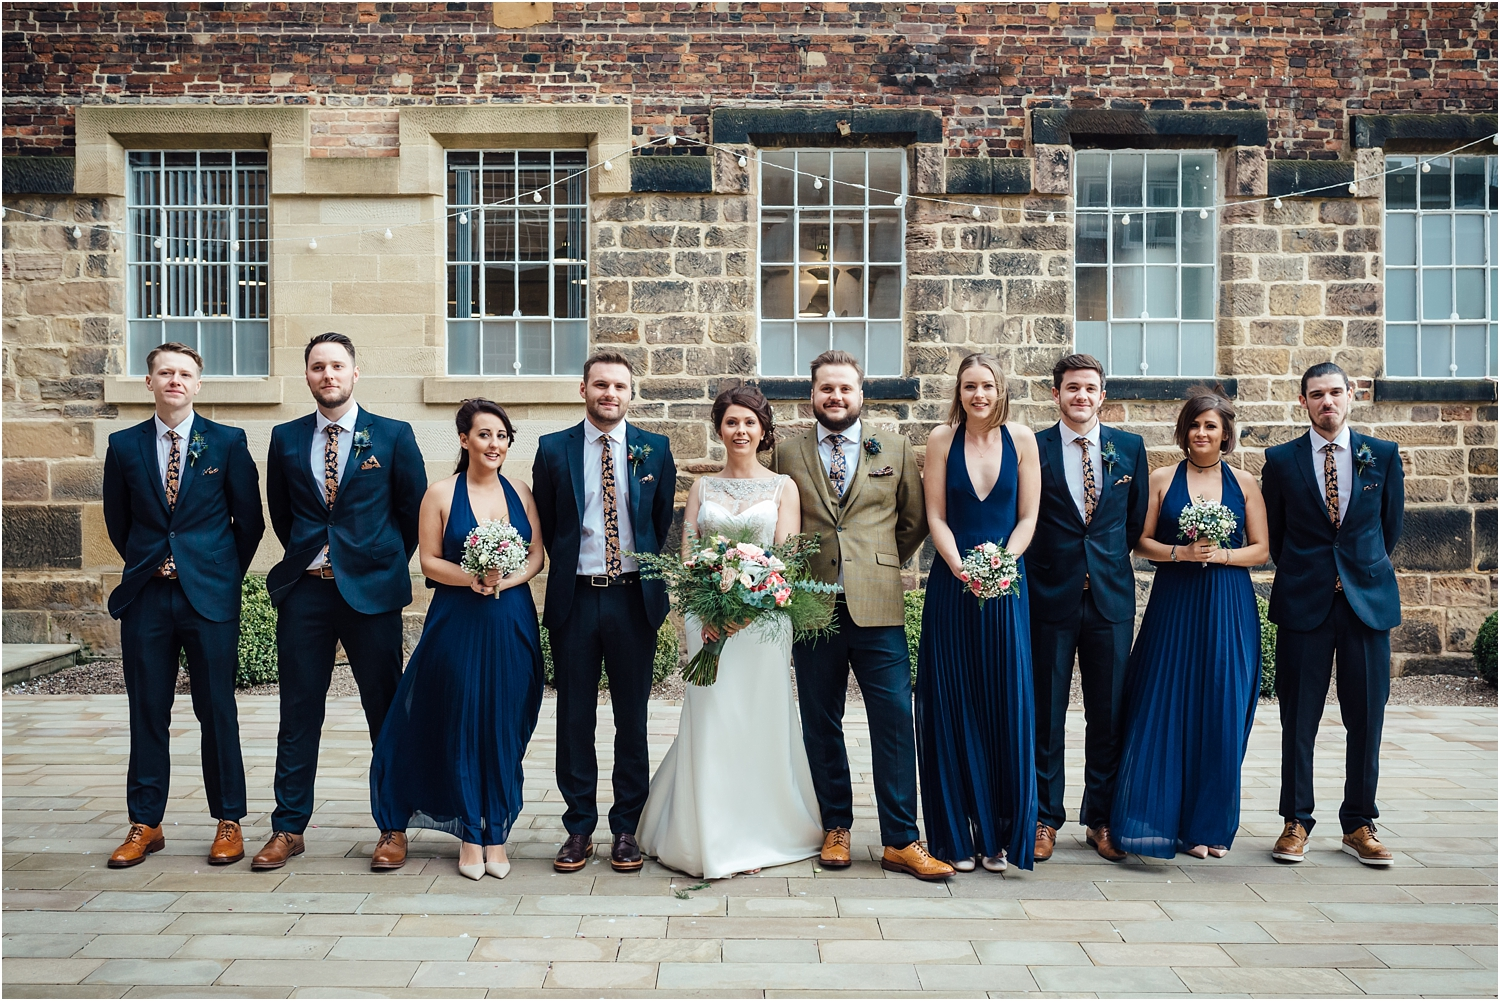 Victoria-Ben-The-West-Mill-darley-abbey-natural-relaxed-documentary-wedding-photography-photographer-Derby-Nottingham-Derbyshire-Nottinghamshire-Leicestershire-Lincolnshire-East-Midlands_0068.jpg